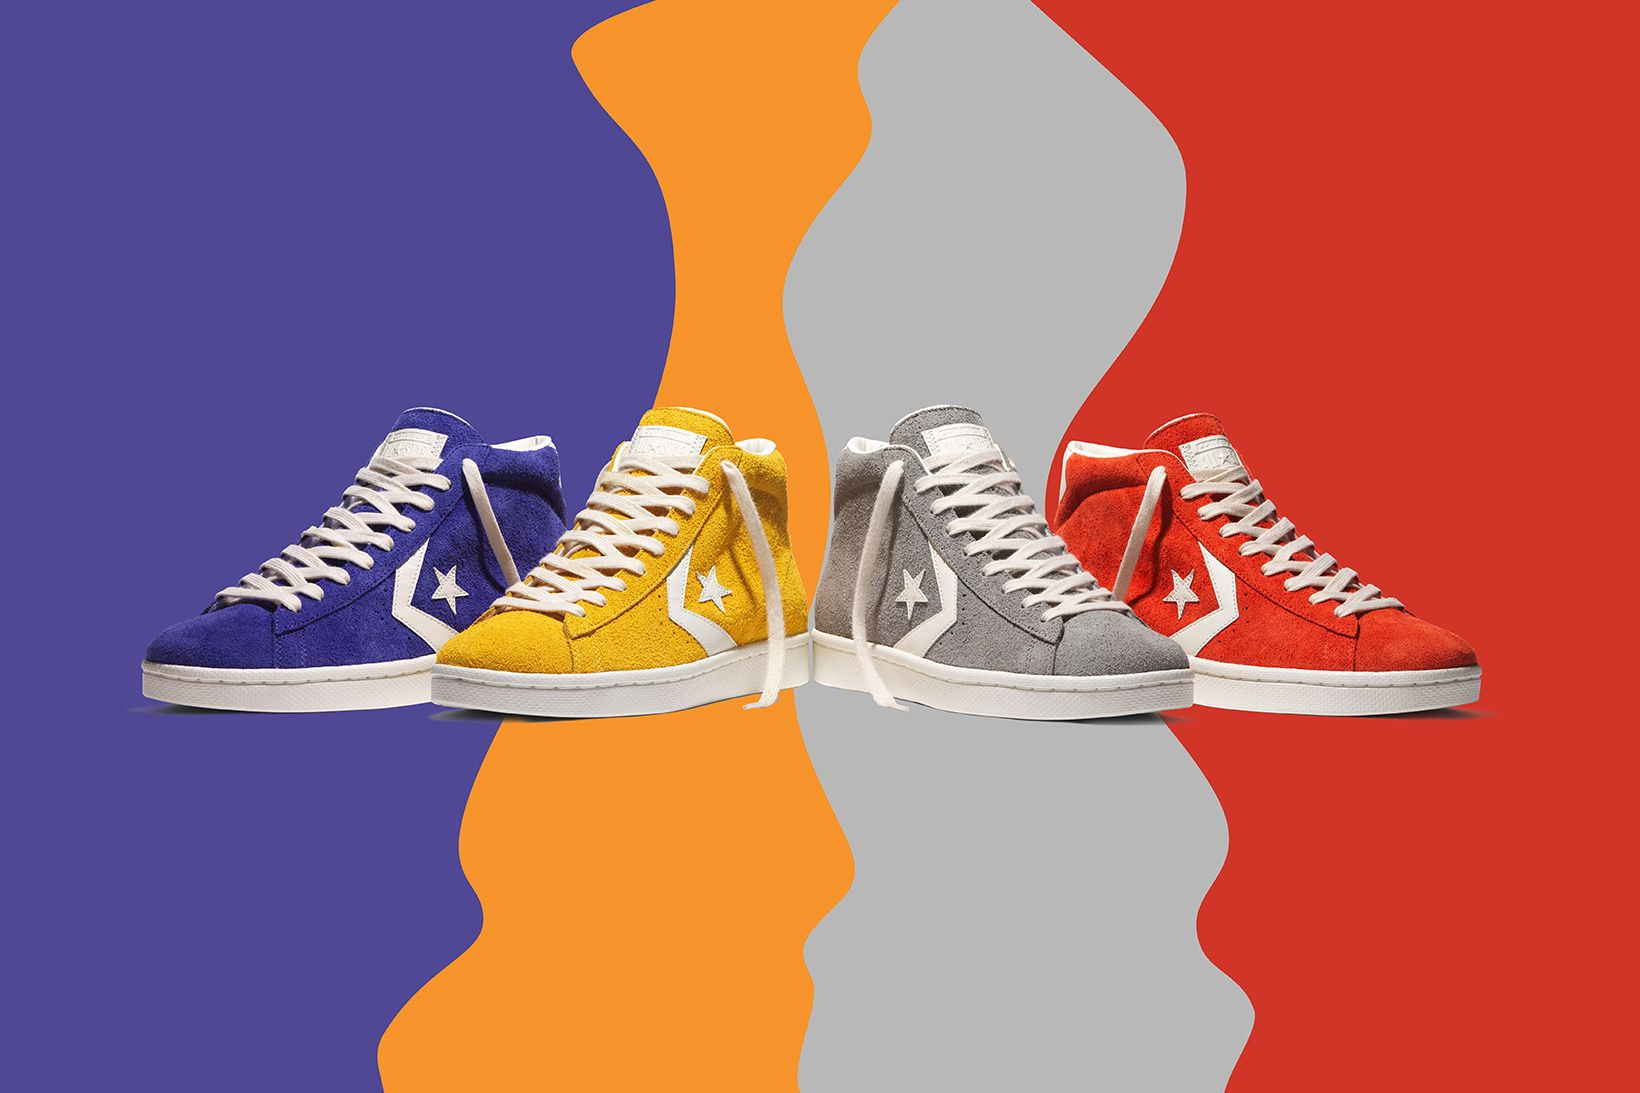 fa136974bbd Converse Celebrates 40 Years of the Pro Leather With New Vintage ...